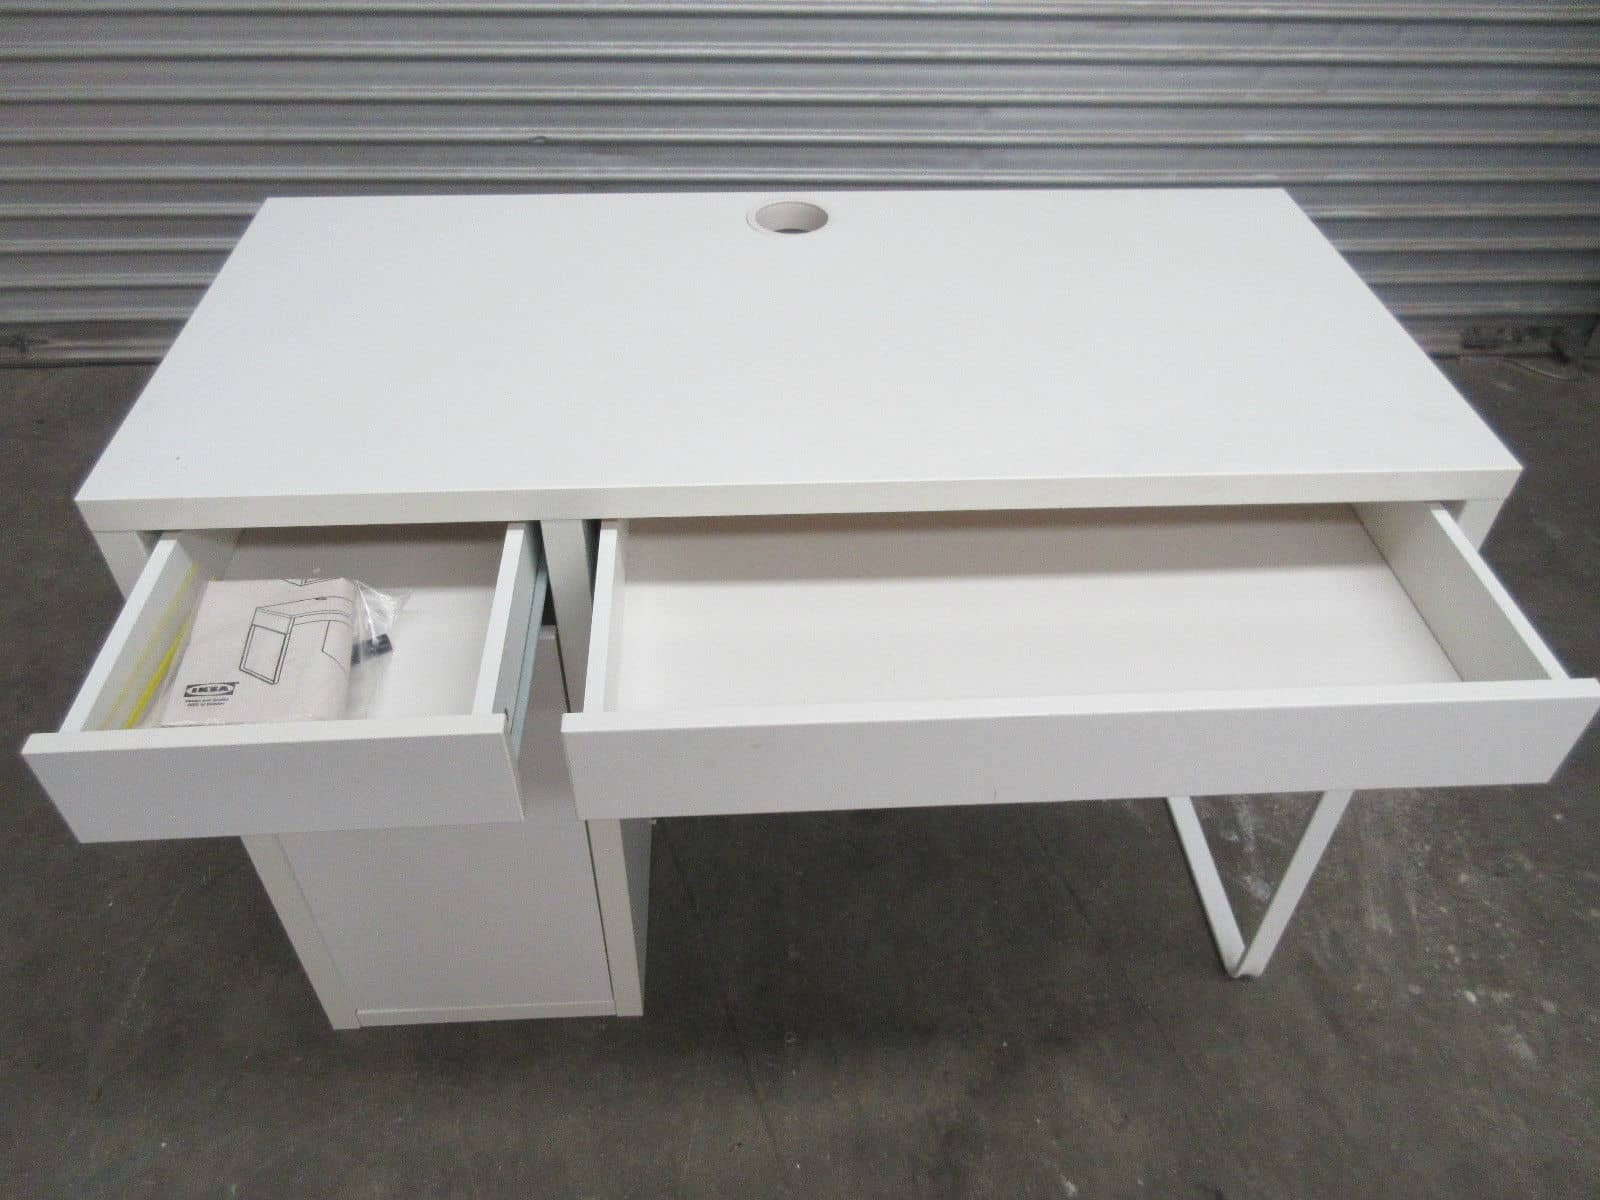 Ikea children s computer desk white 2 draws and cupboard Desk with shelves on side